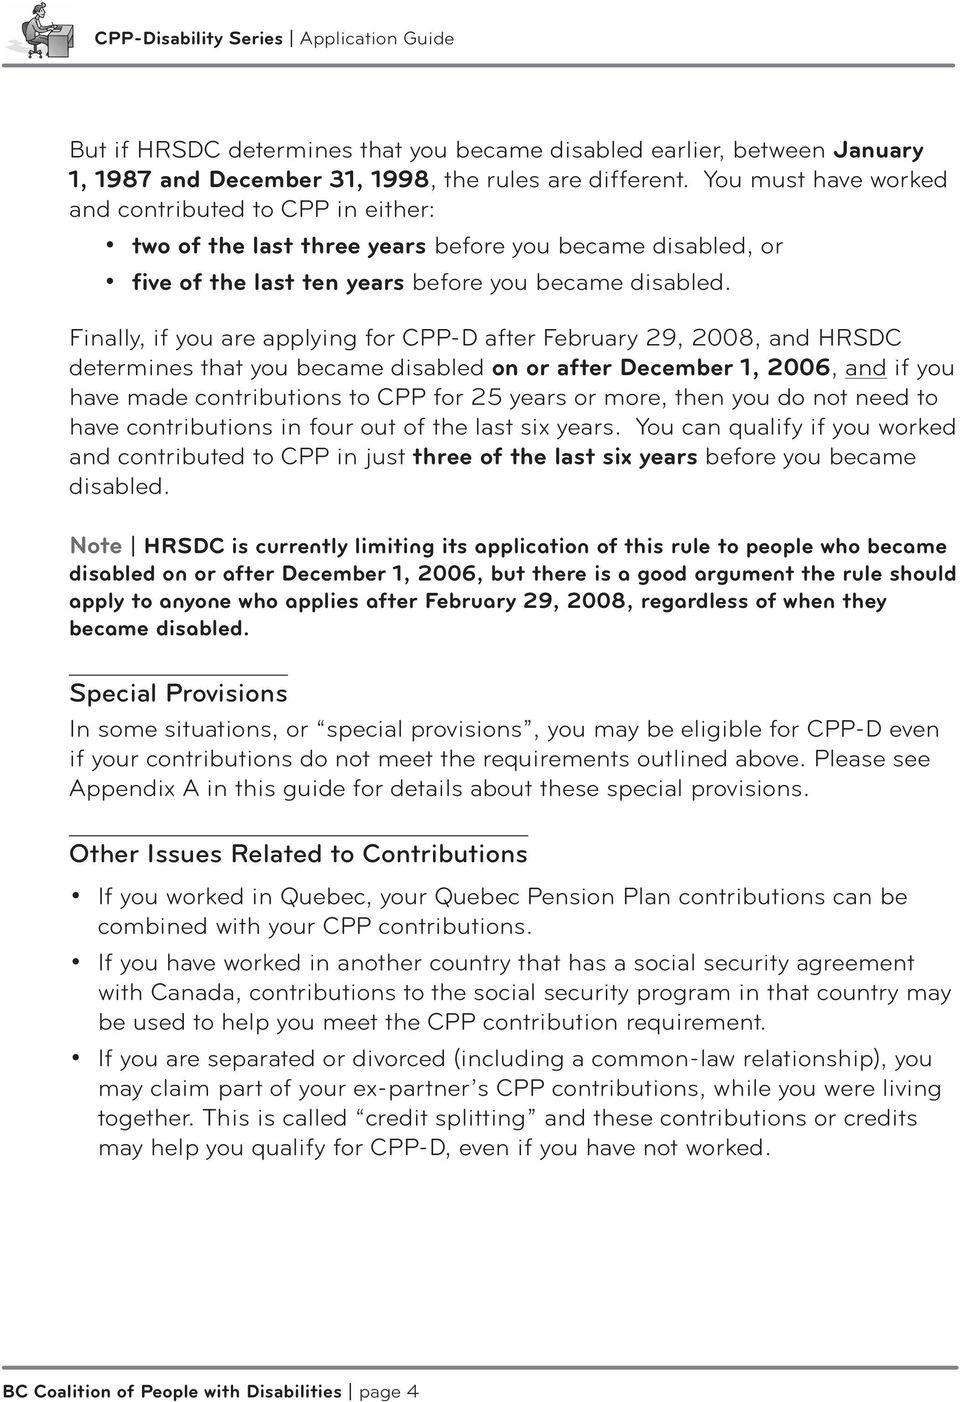 Finally, if you are applying for CPP-D after February 29, 2008, and HRSDC determines that you became disabled on or after December 1, 2006, and if you have made contributions to CPP for 25 years or